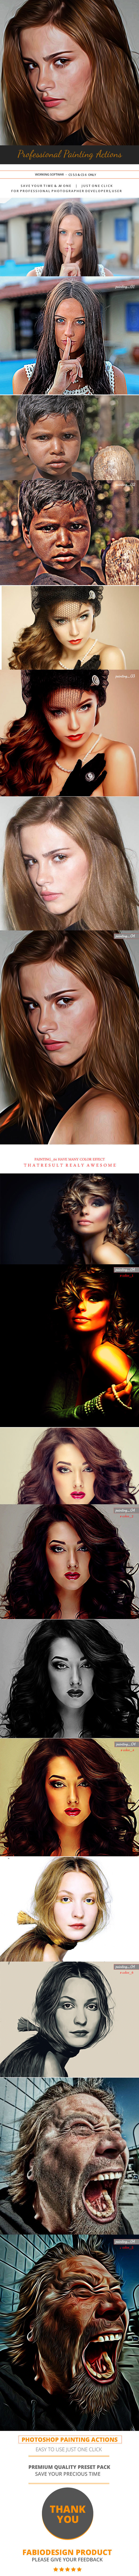 Professional Painting Action - Photo Effects Actions